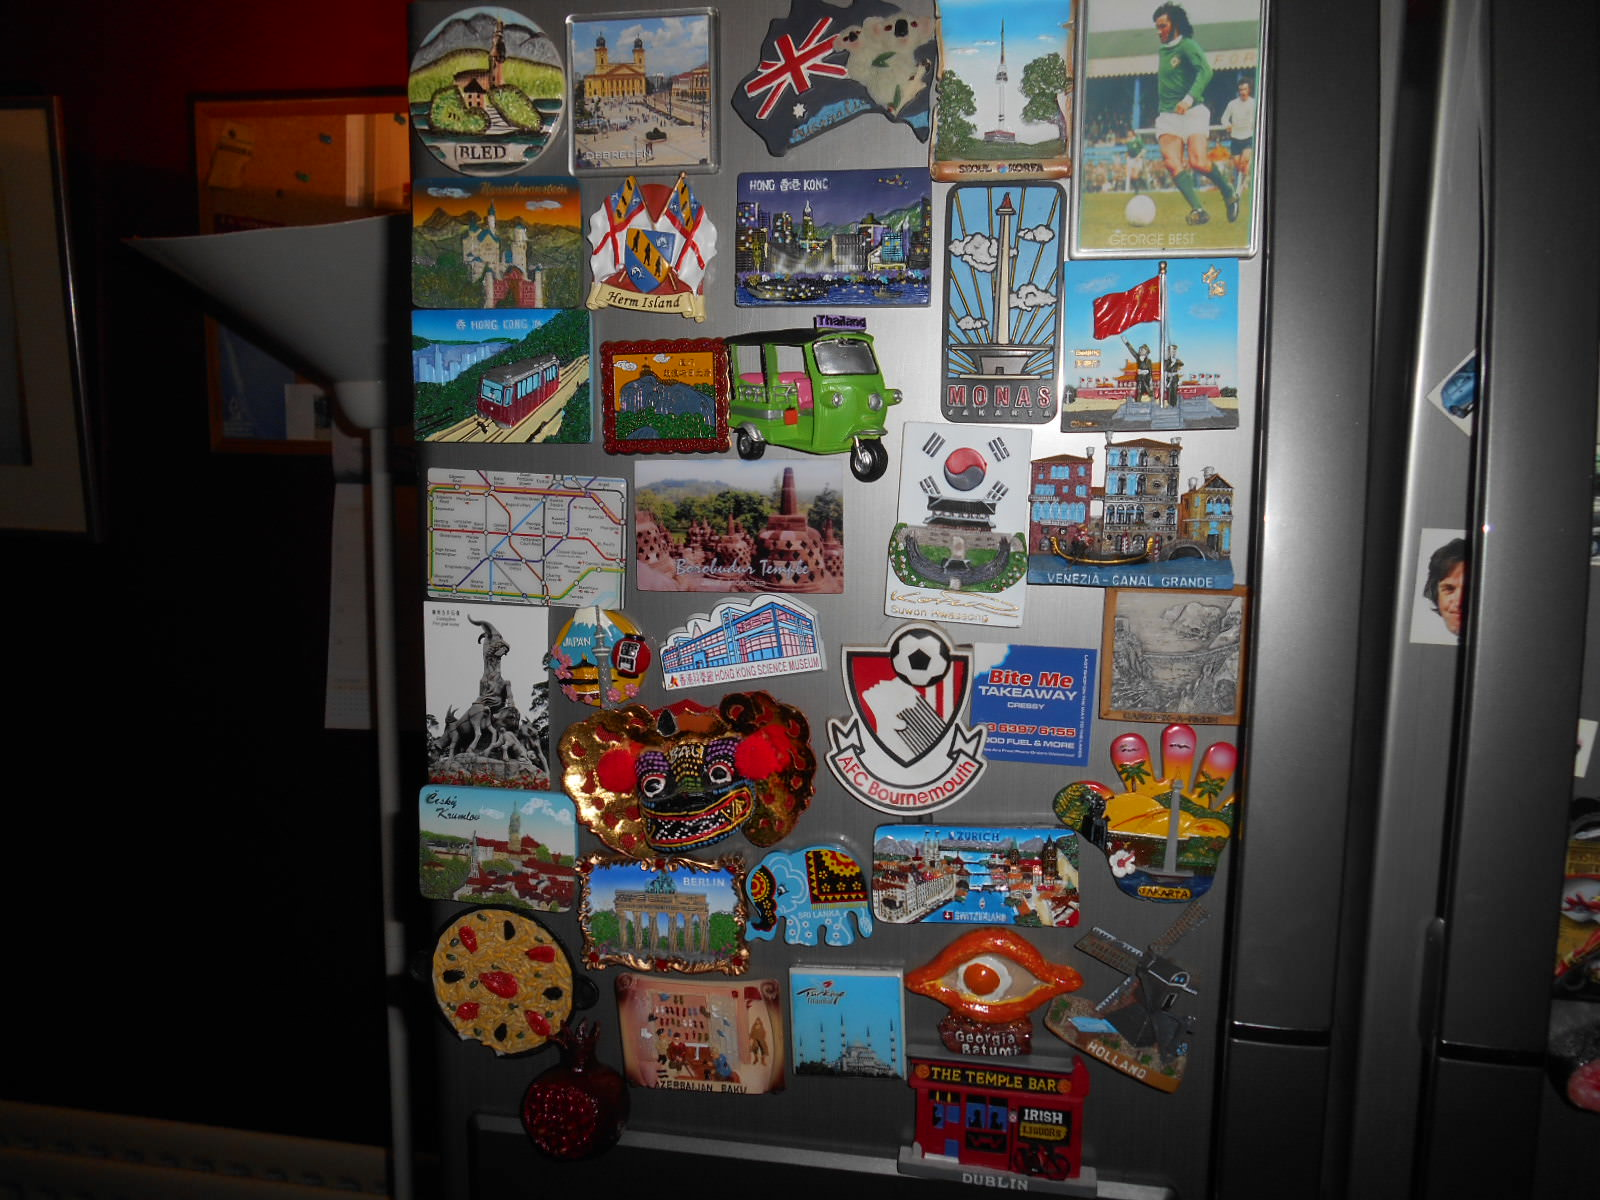 mums fridge magnets